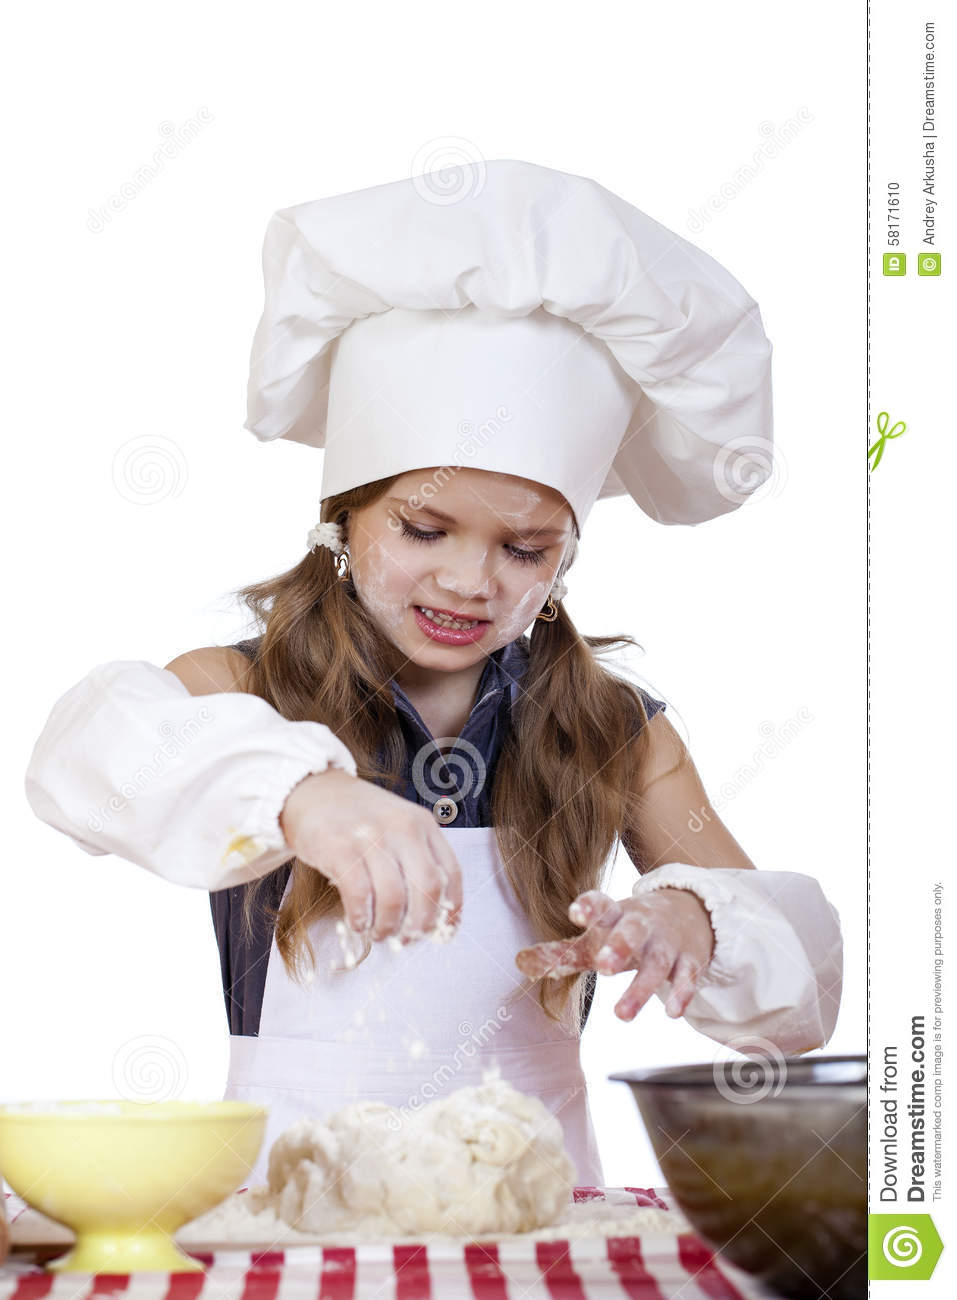 White apron and hat - Little Girl In A White Apron And Chefs Hat Knead The Dough